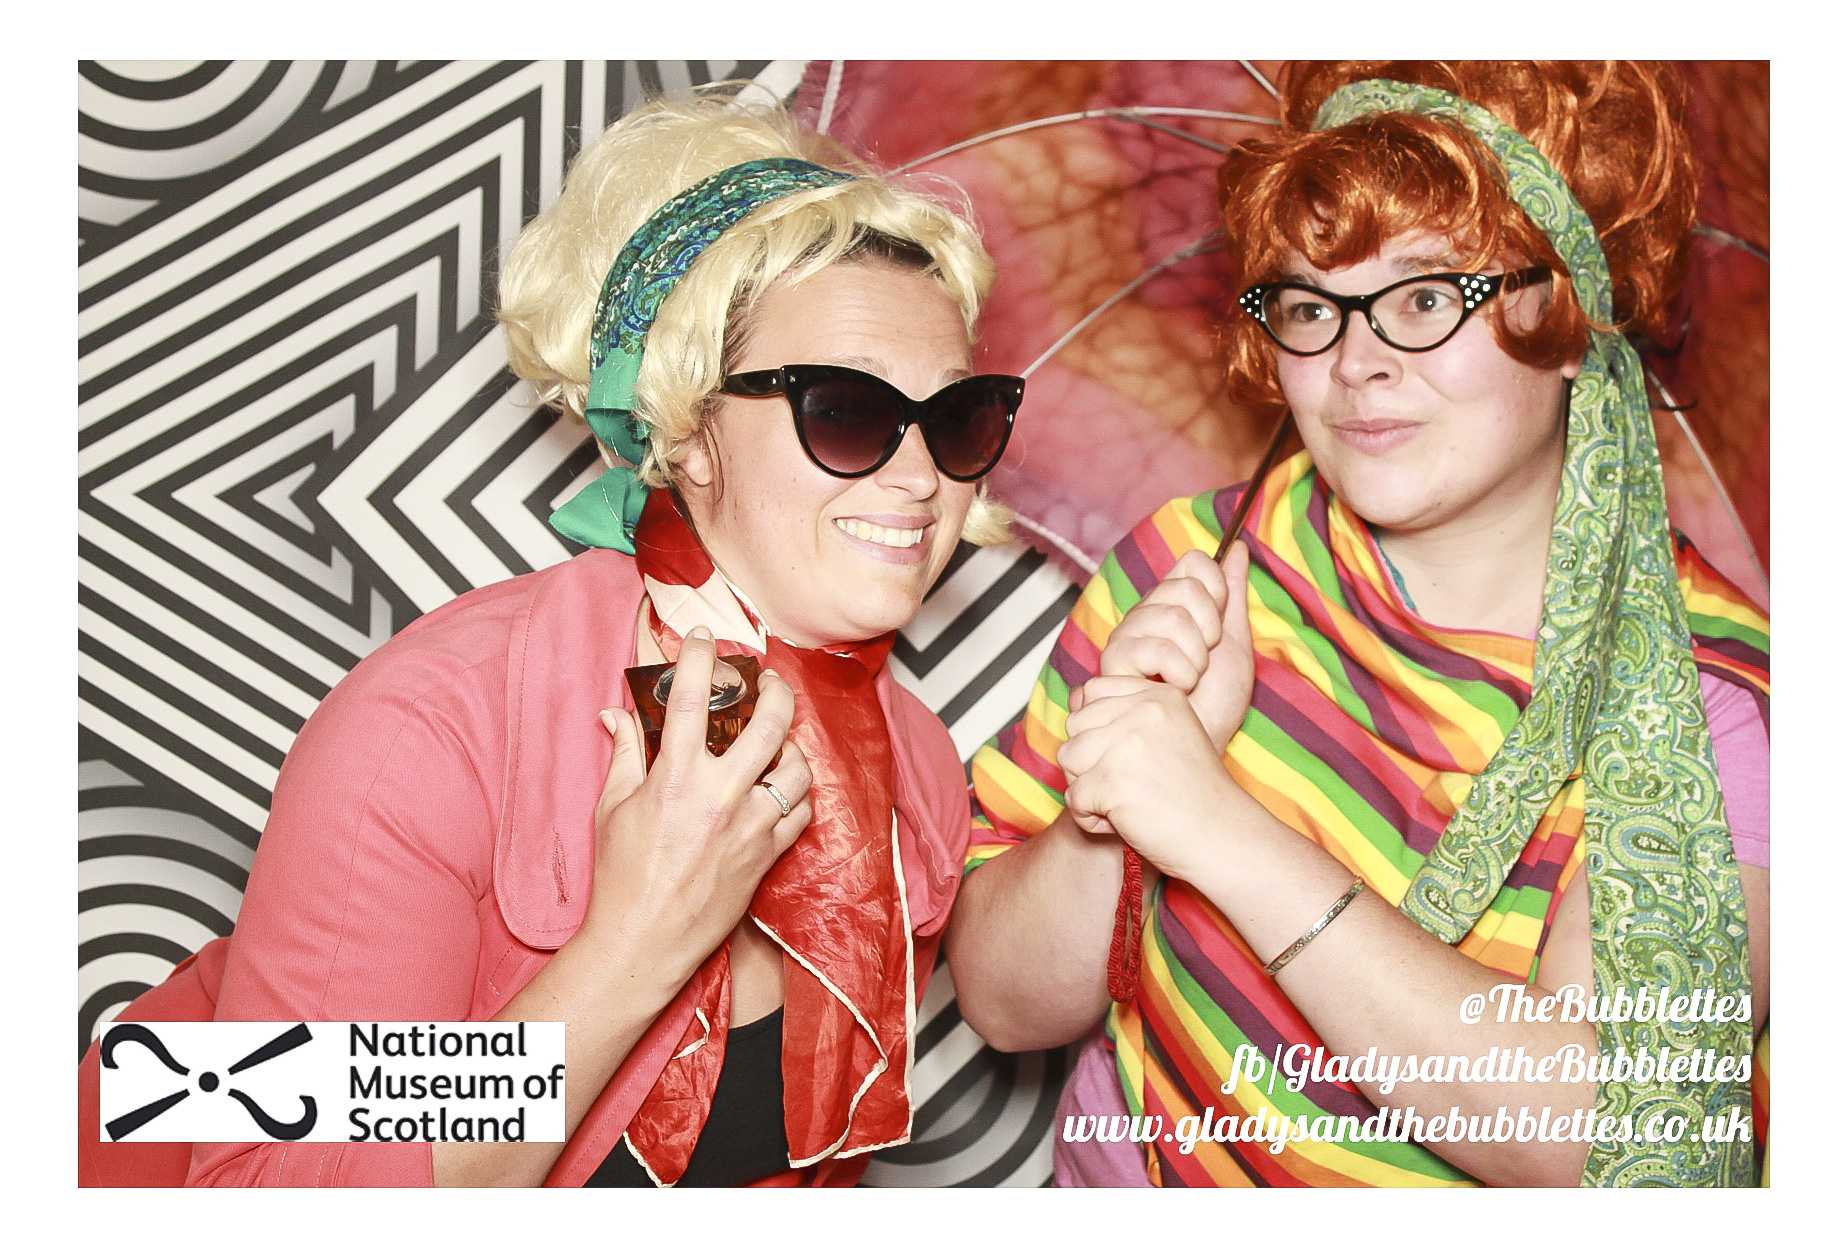 Styling the Nation at The National Museum Gladys & The Bubblettes Photo Booth Nov 2016_23.jpg